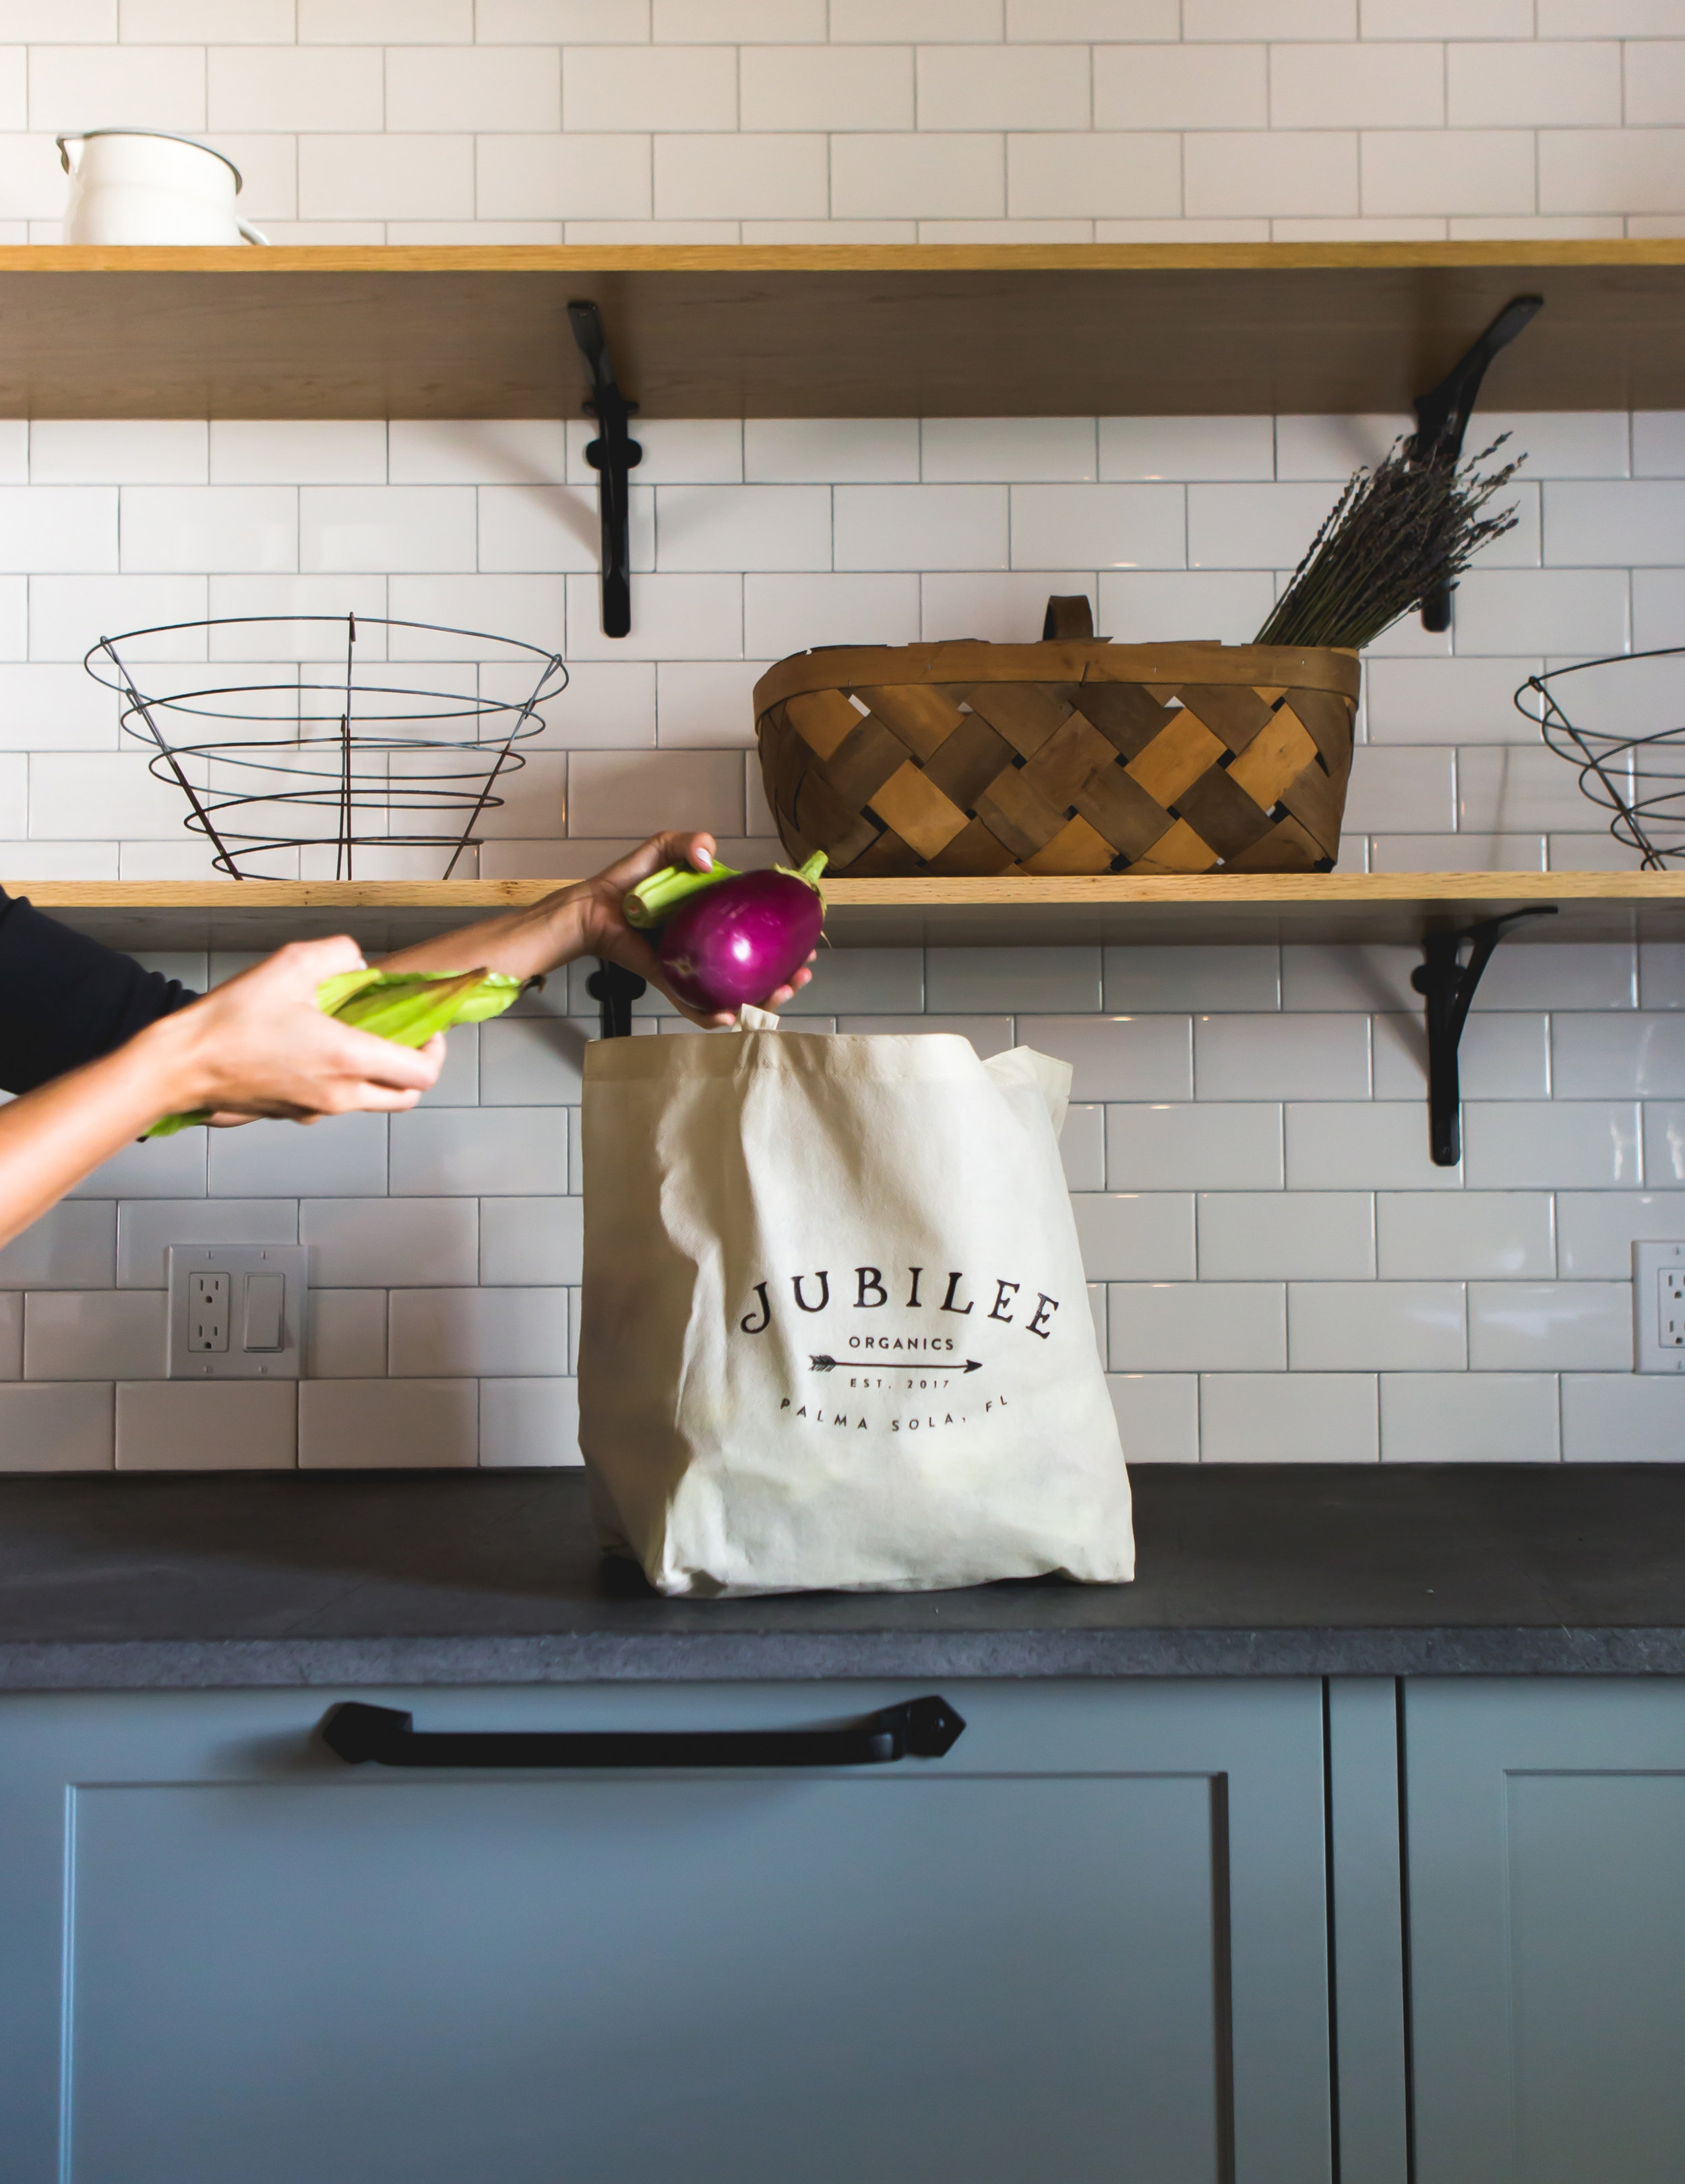 The Modern Farmhouse - The Modern Farmhouse sits on a working organic farm. For their kitchen, the clients wanted a space to accommodate such tasks as cleaning vegetables and preparing large quantities of food. Thus, we created the scullery, the primary prep space.